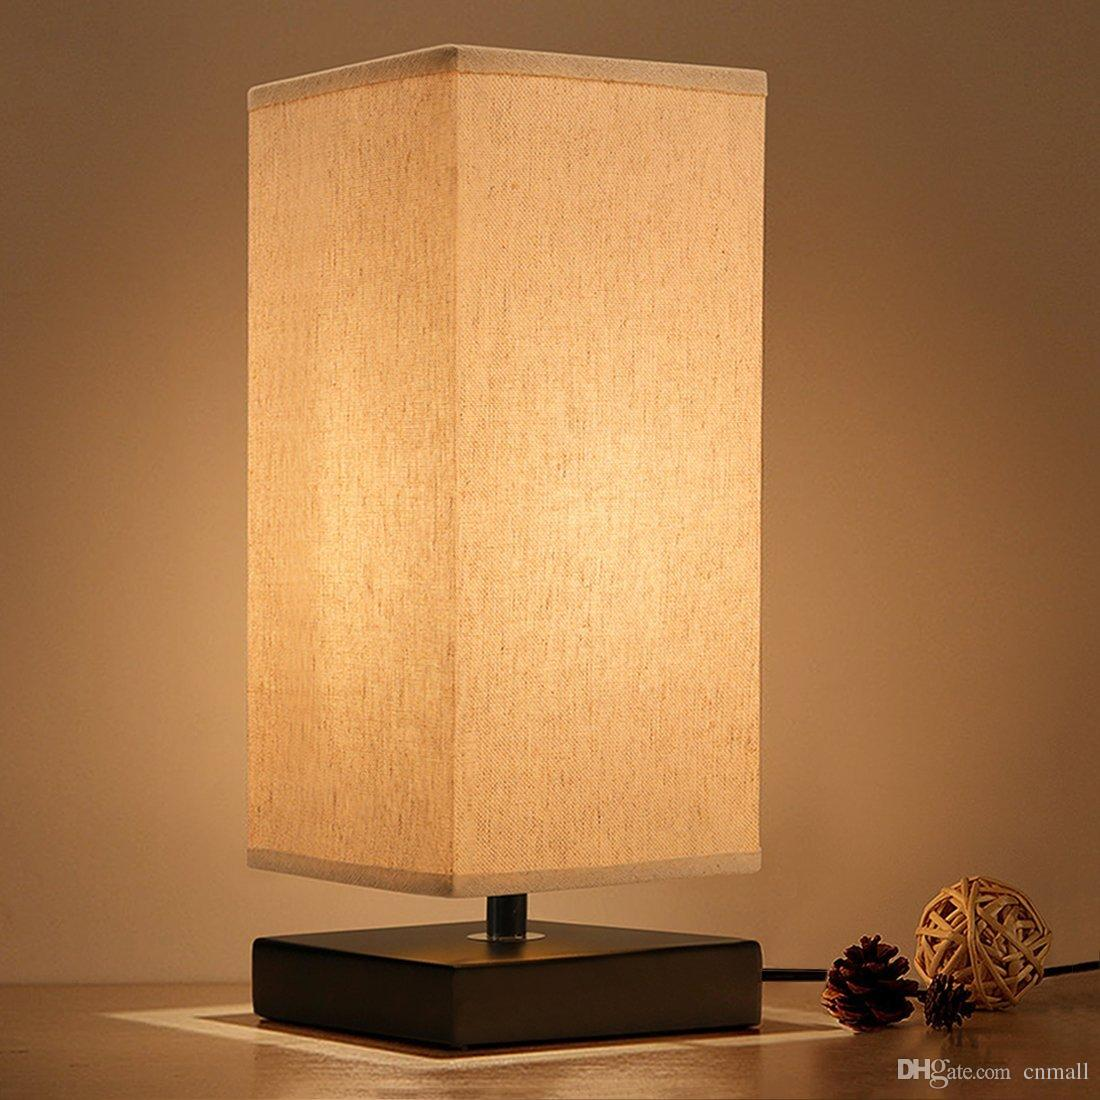 Bedside Table Lamp Minimalist Solid Wood Night Light Desk Simple Lamps Round Nightstand With Fabric Shade By